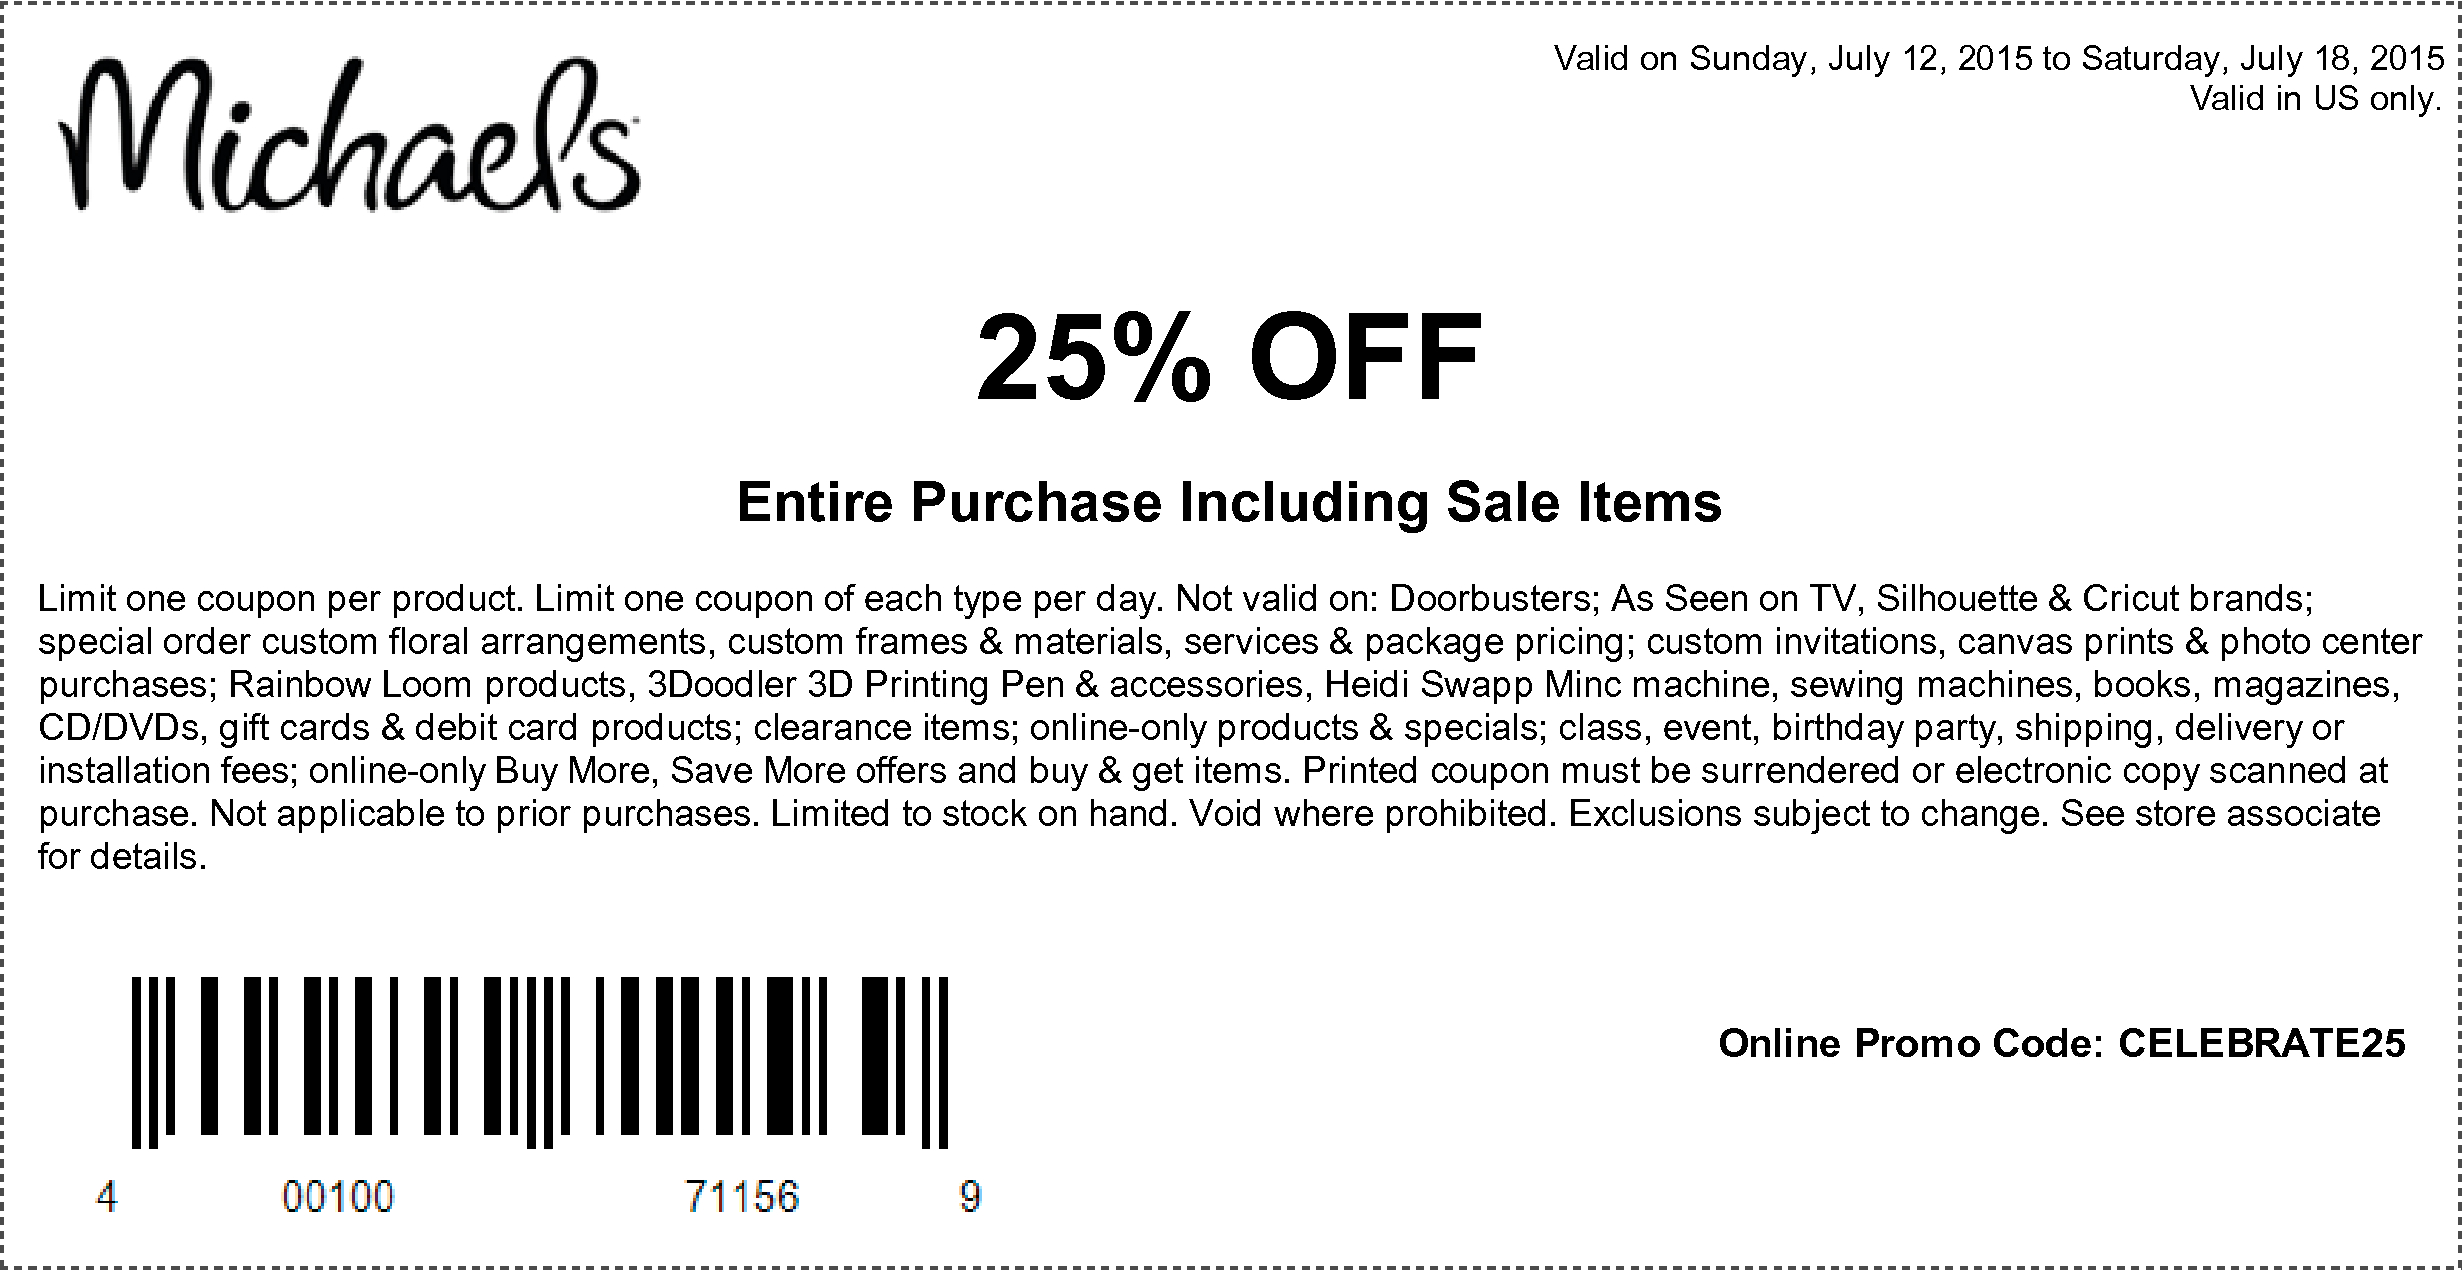 Entire Purchase Including Sale Items   Stuff To Buy   Free Printable - Free Printable Michaels Coupons